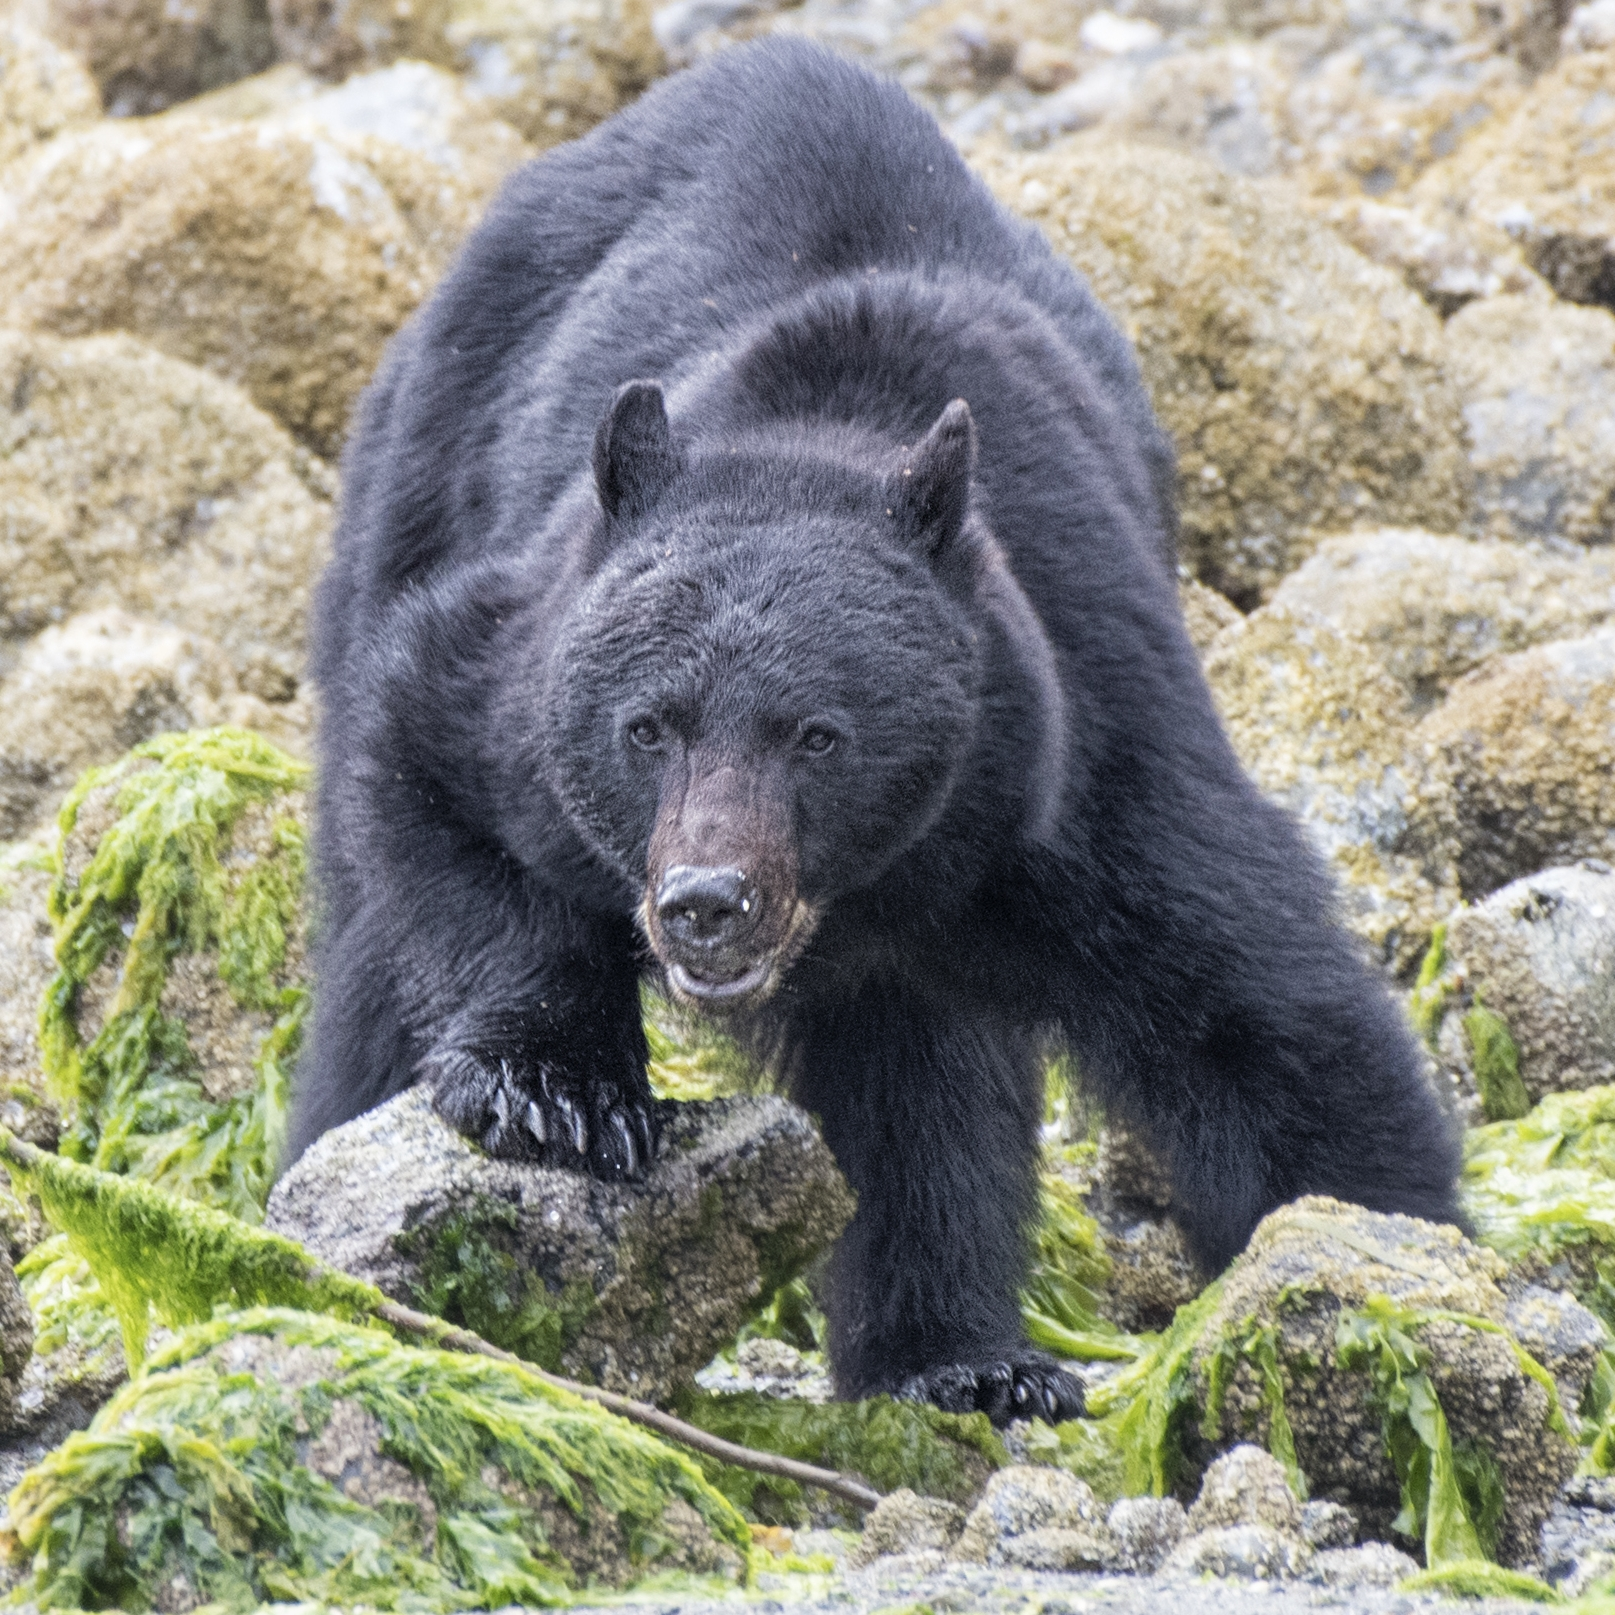 Black bear photography workshops